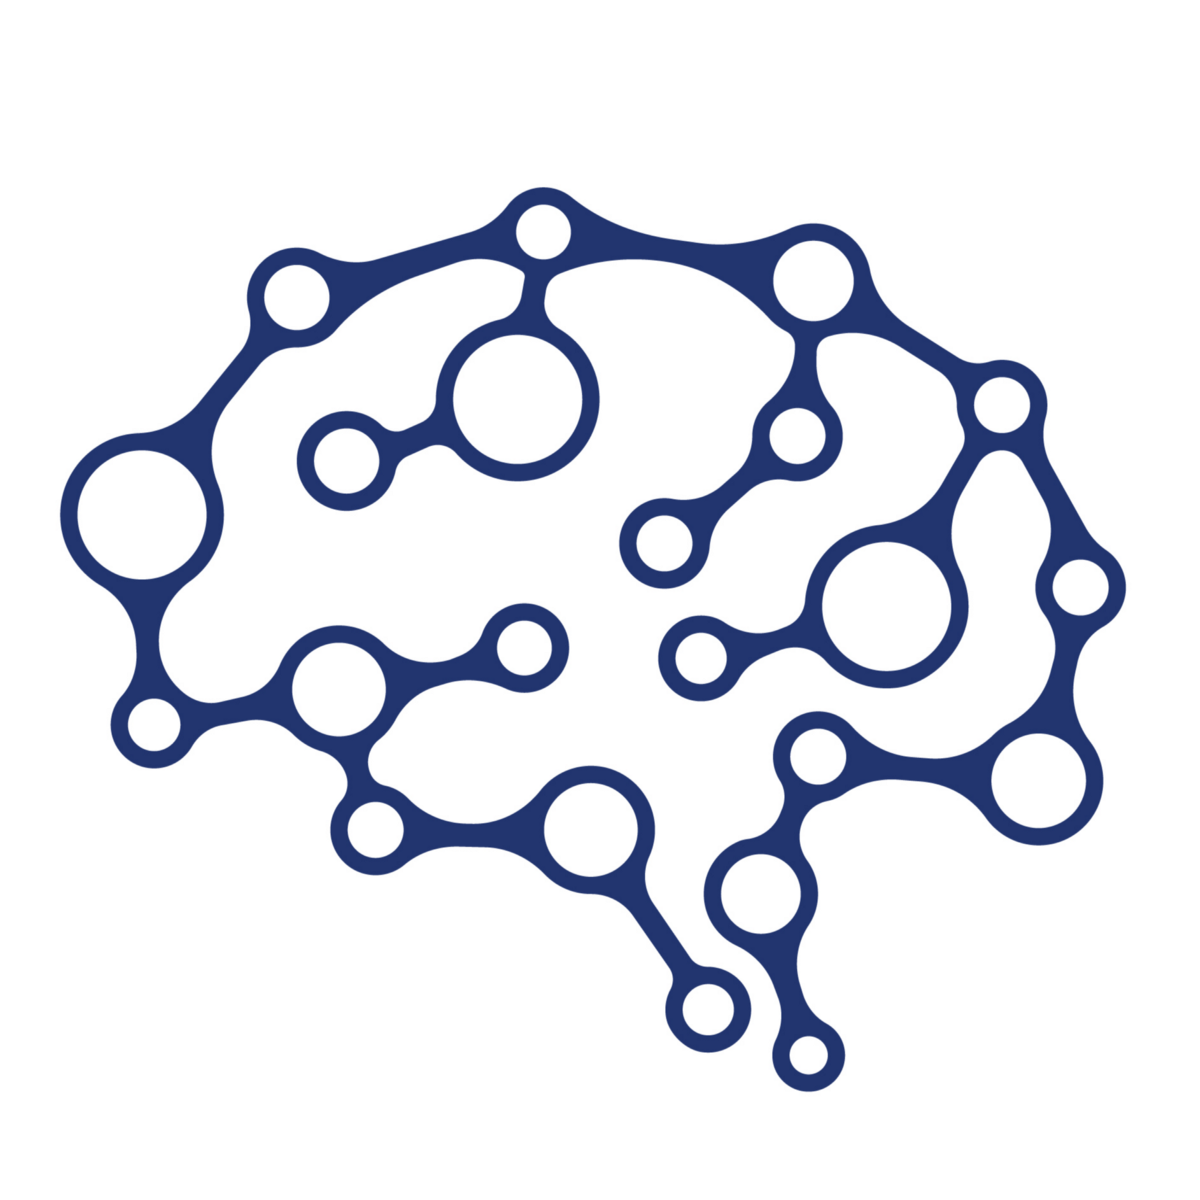 A Deep Dive into the Functionality of Artificial Vs. Biological Neural Networks